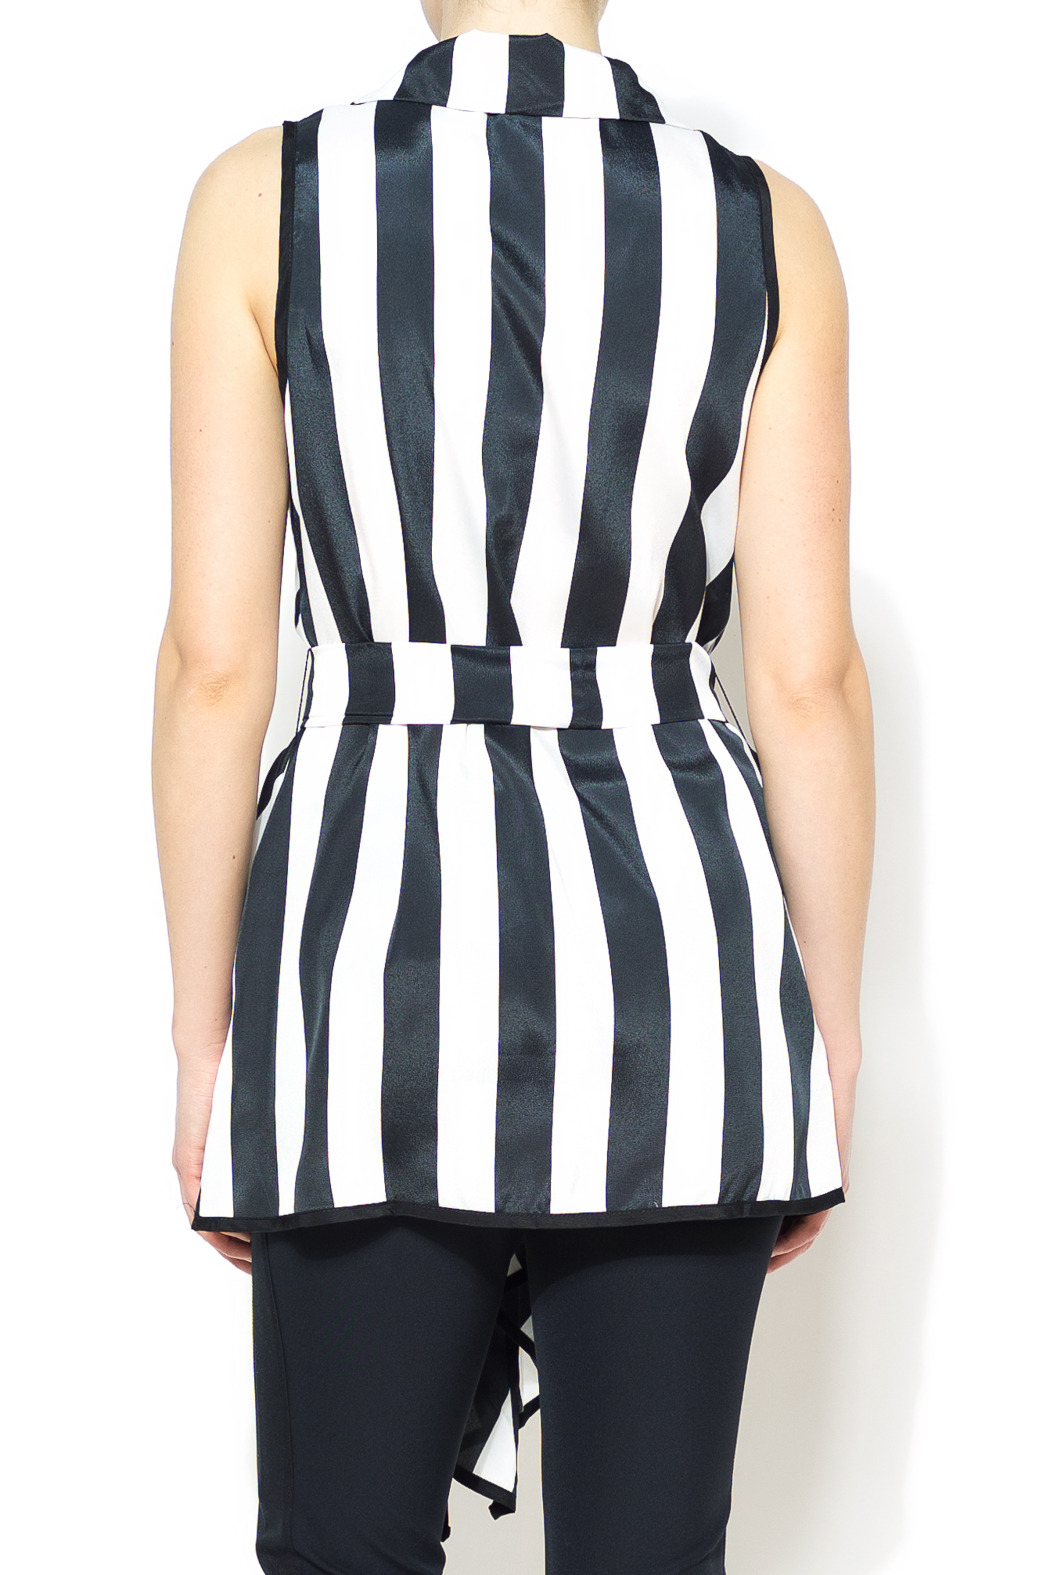 Nico LA Striped Belted Top - Back Cropped Image